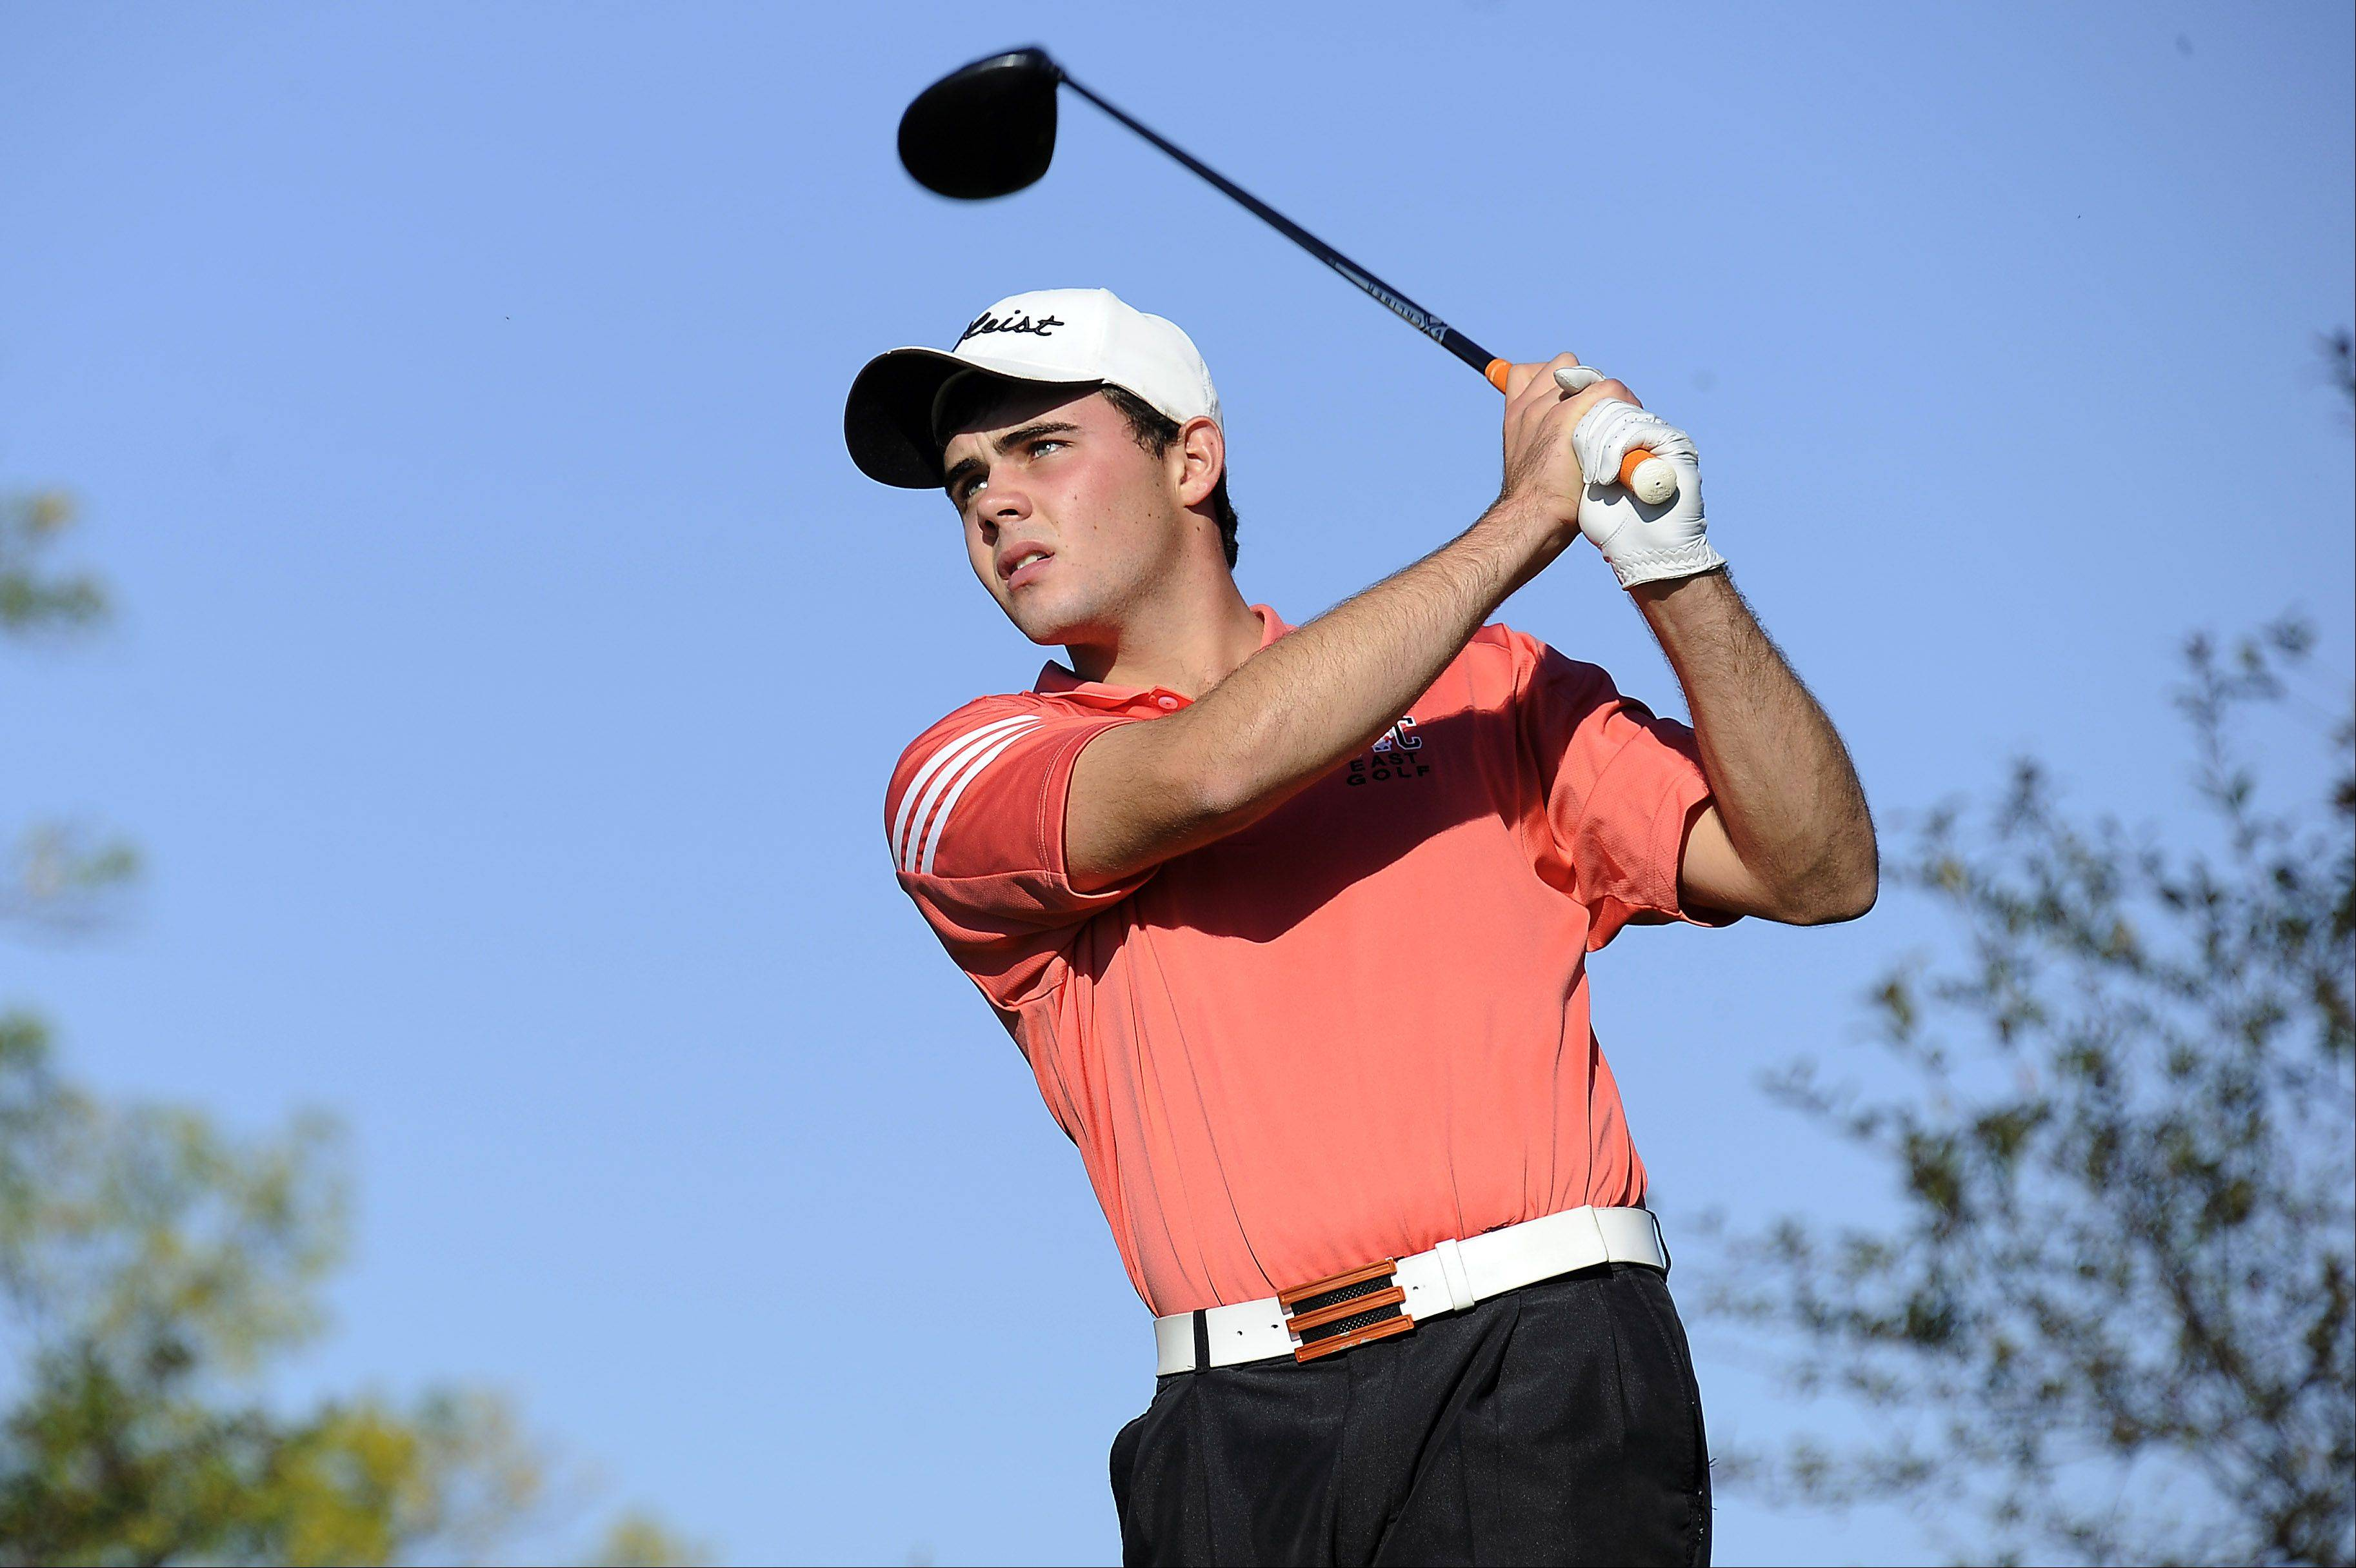 St. Charles East's Max Kelly tees off on hole No. 4 at the Wheeling Invitational on Saturday.